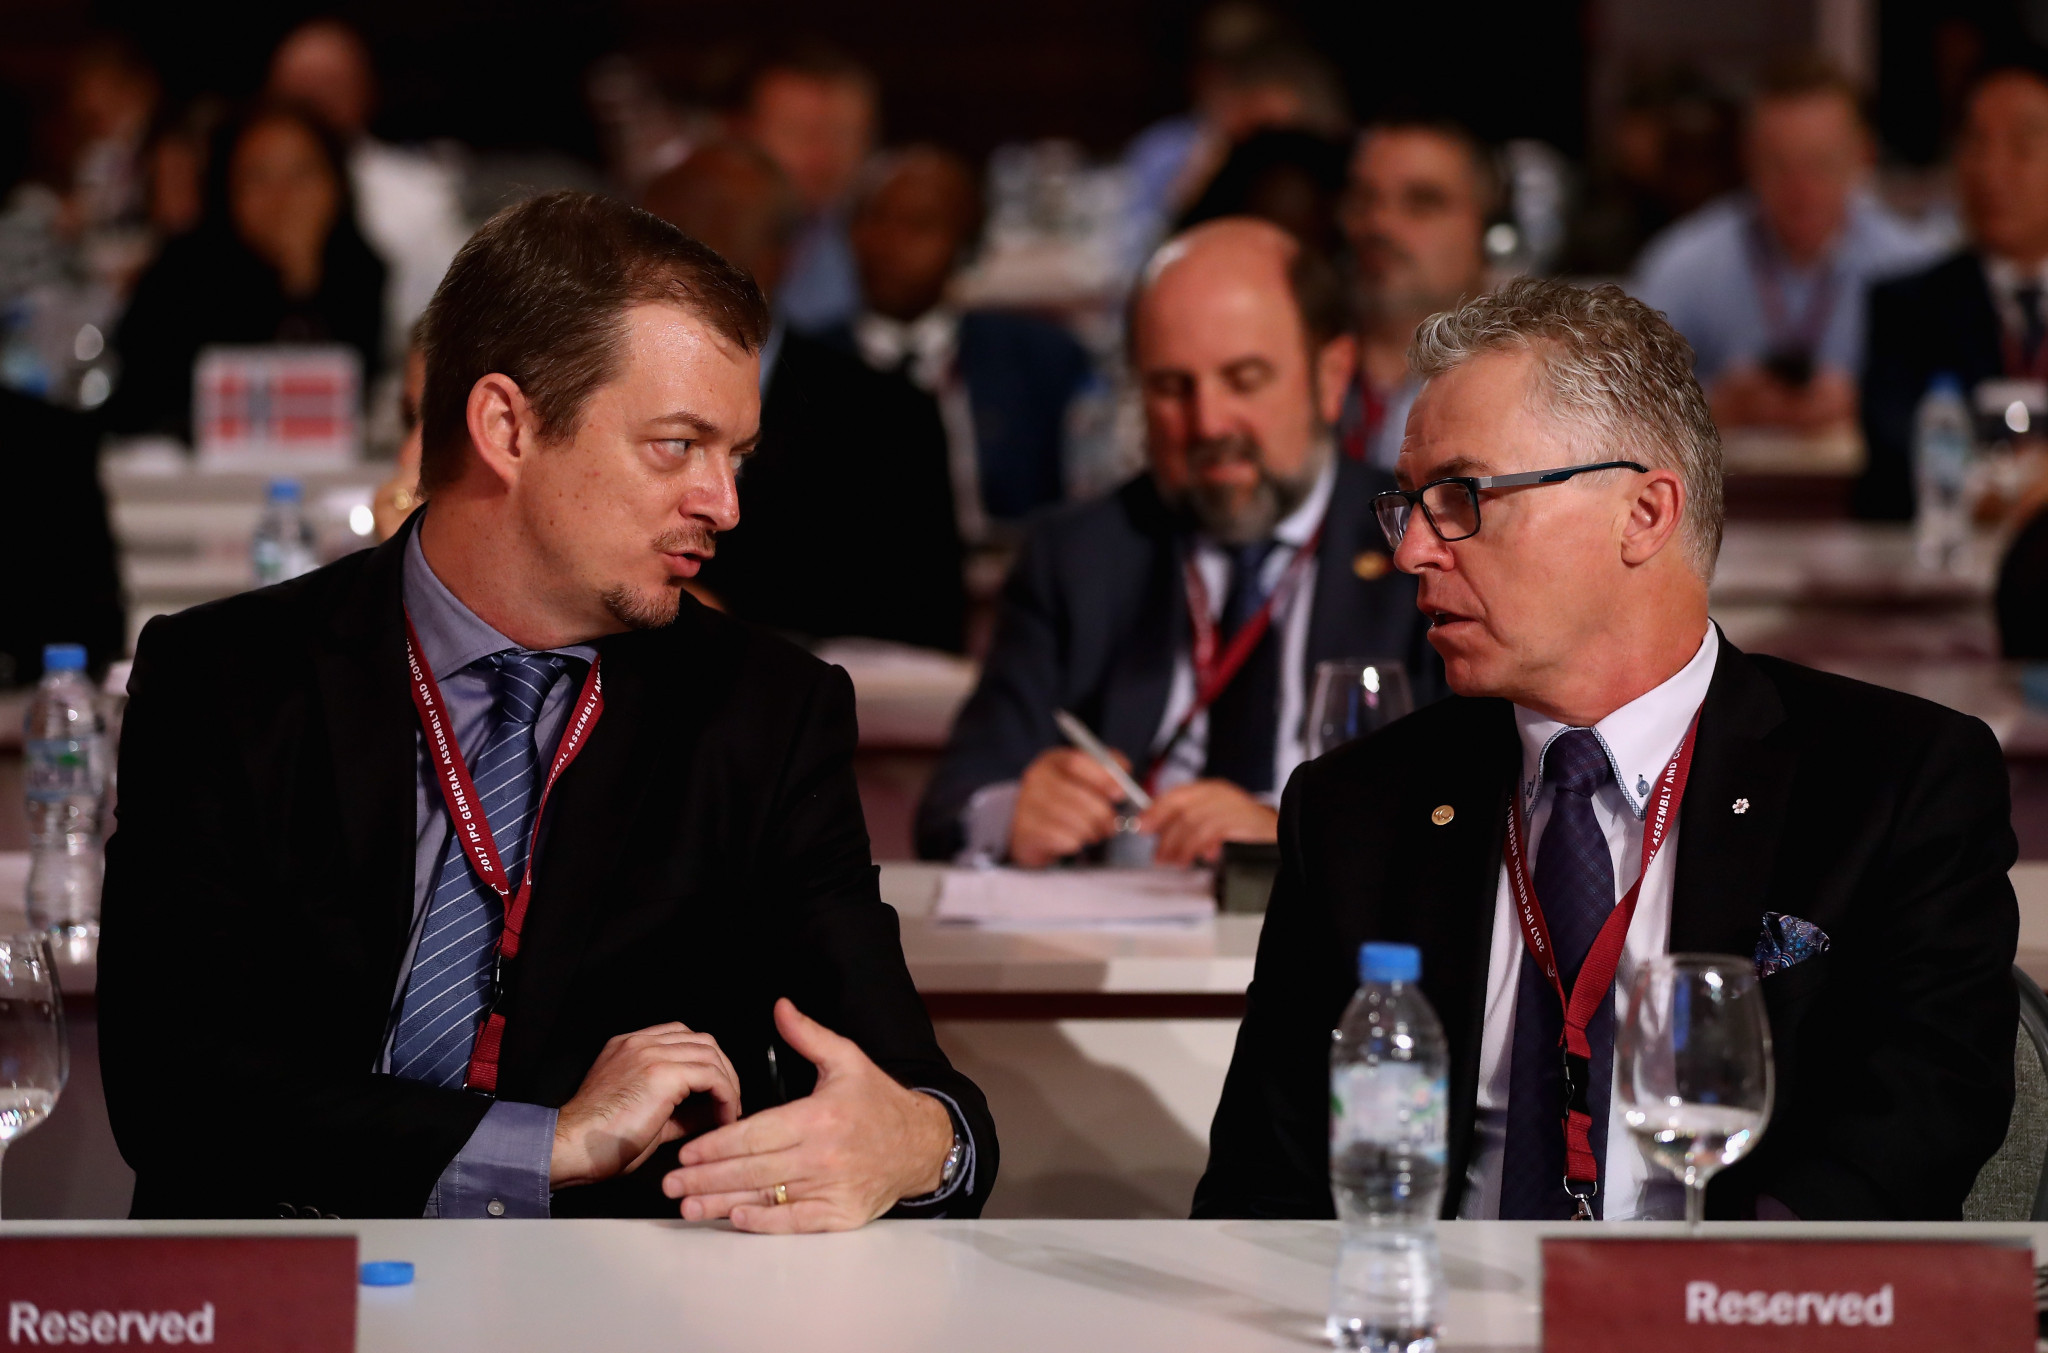 Andrew Parsons, left, beat Patrick Jarvis, right, to the IPC Presidency in September of last year ©Getty Images